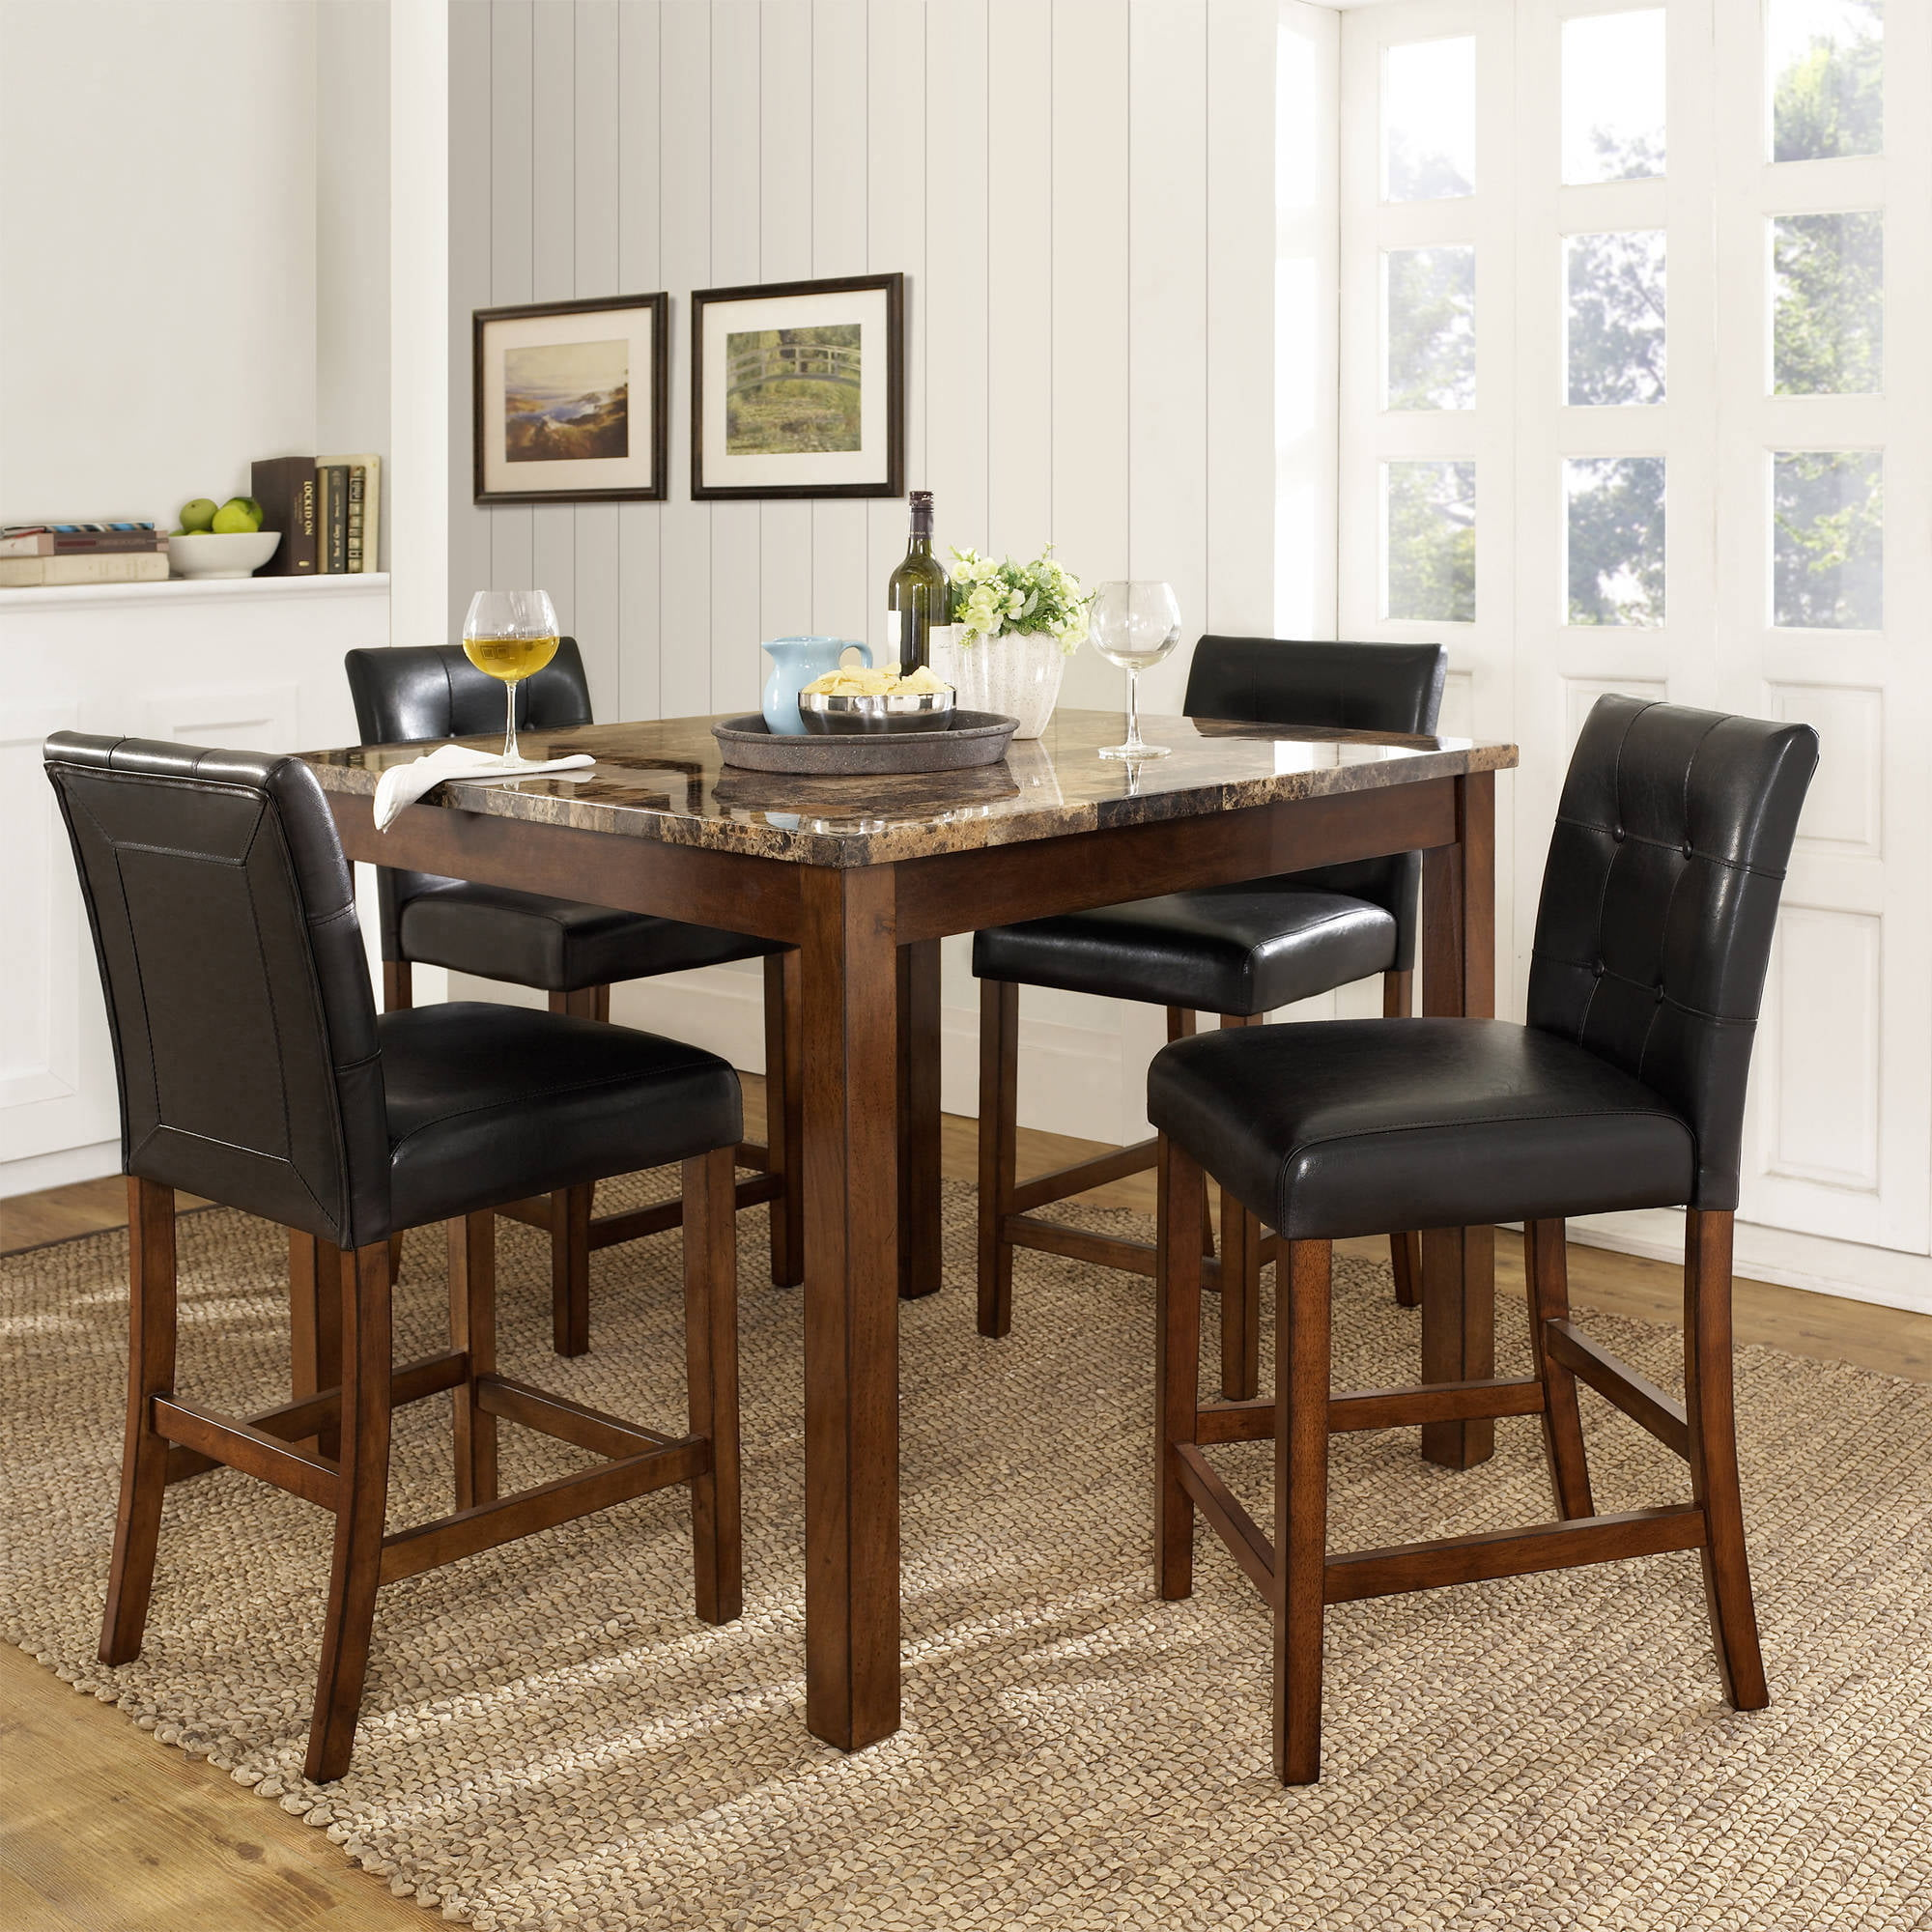 Dining Room Table Pictures Inspiration Kitchen & Dining Furniture  Walmart Review